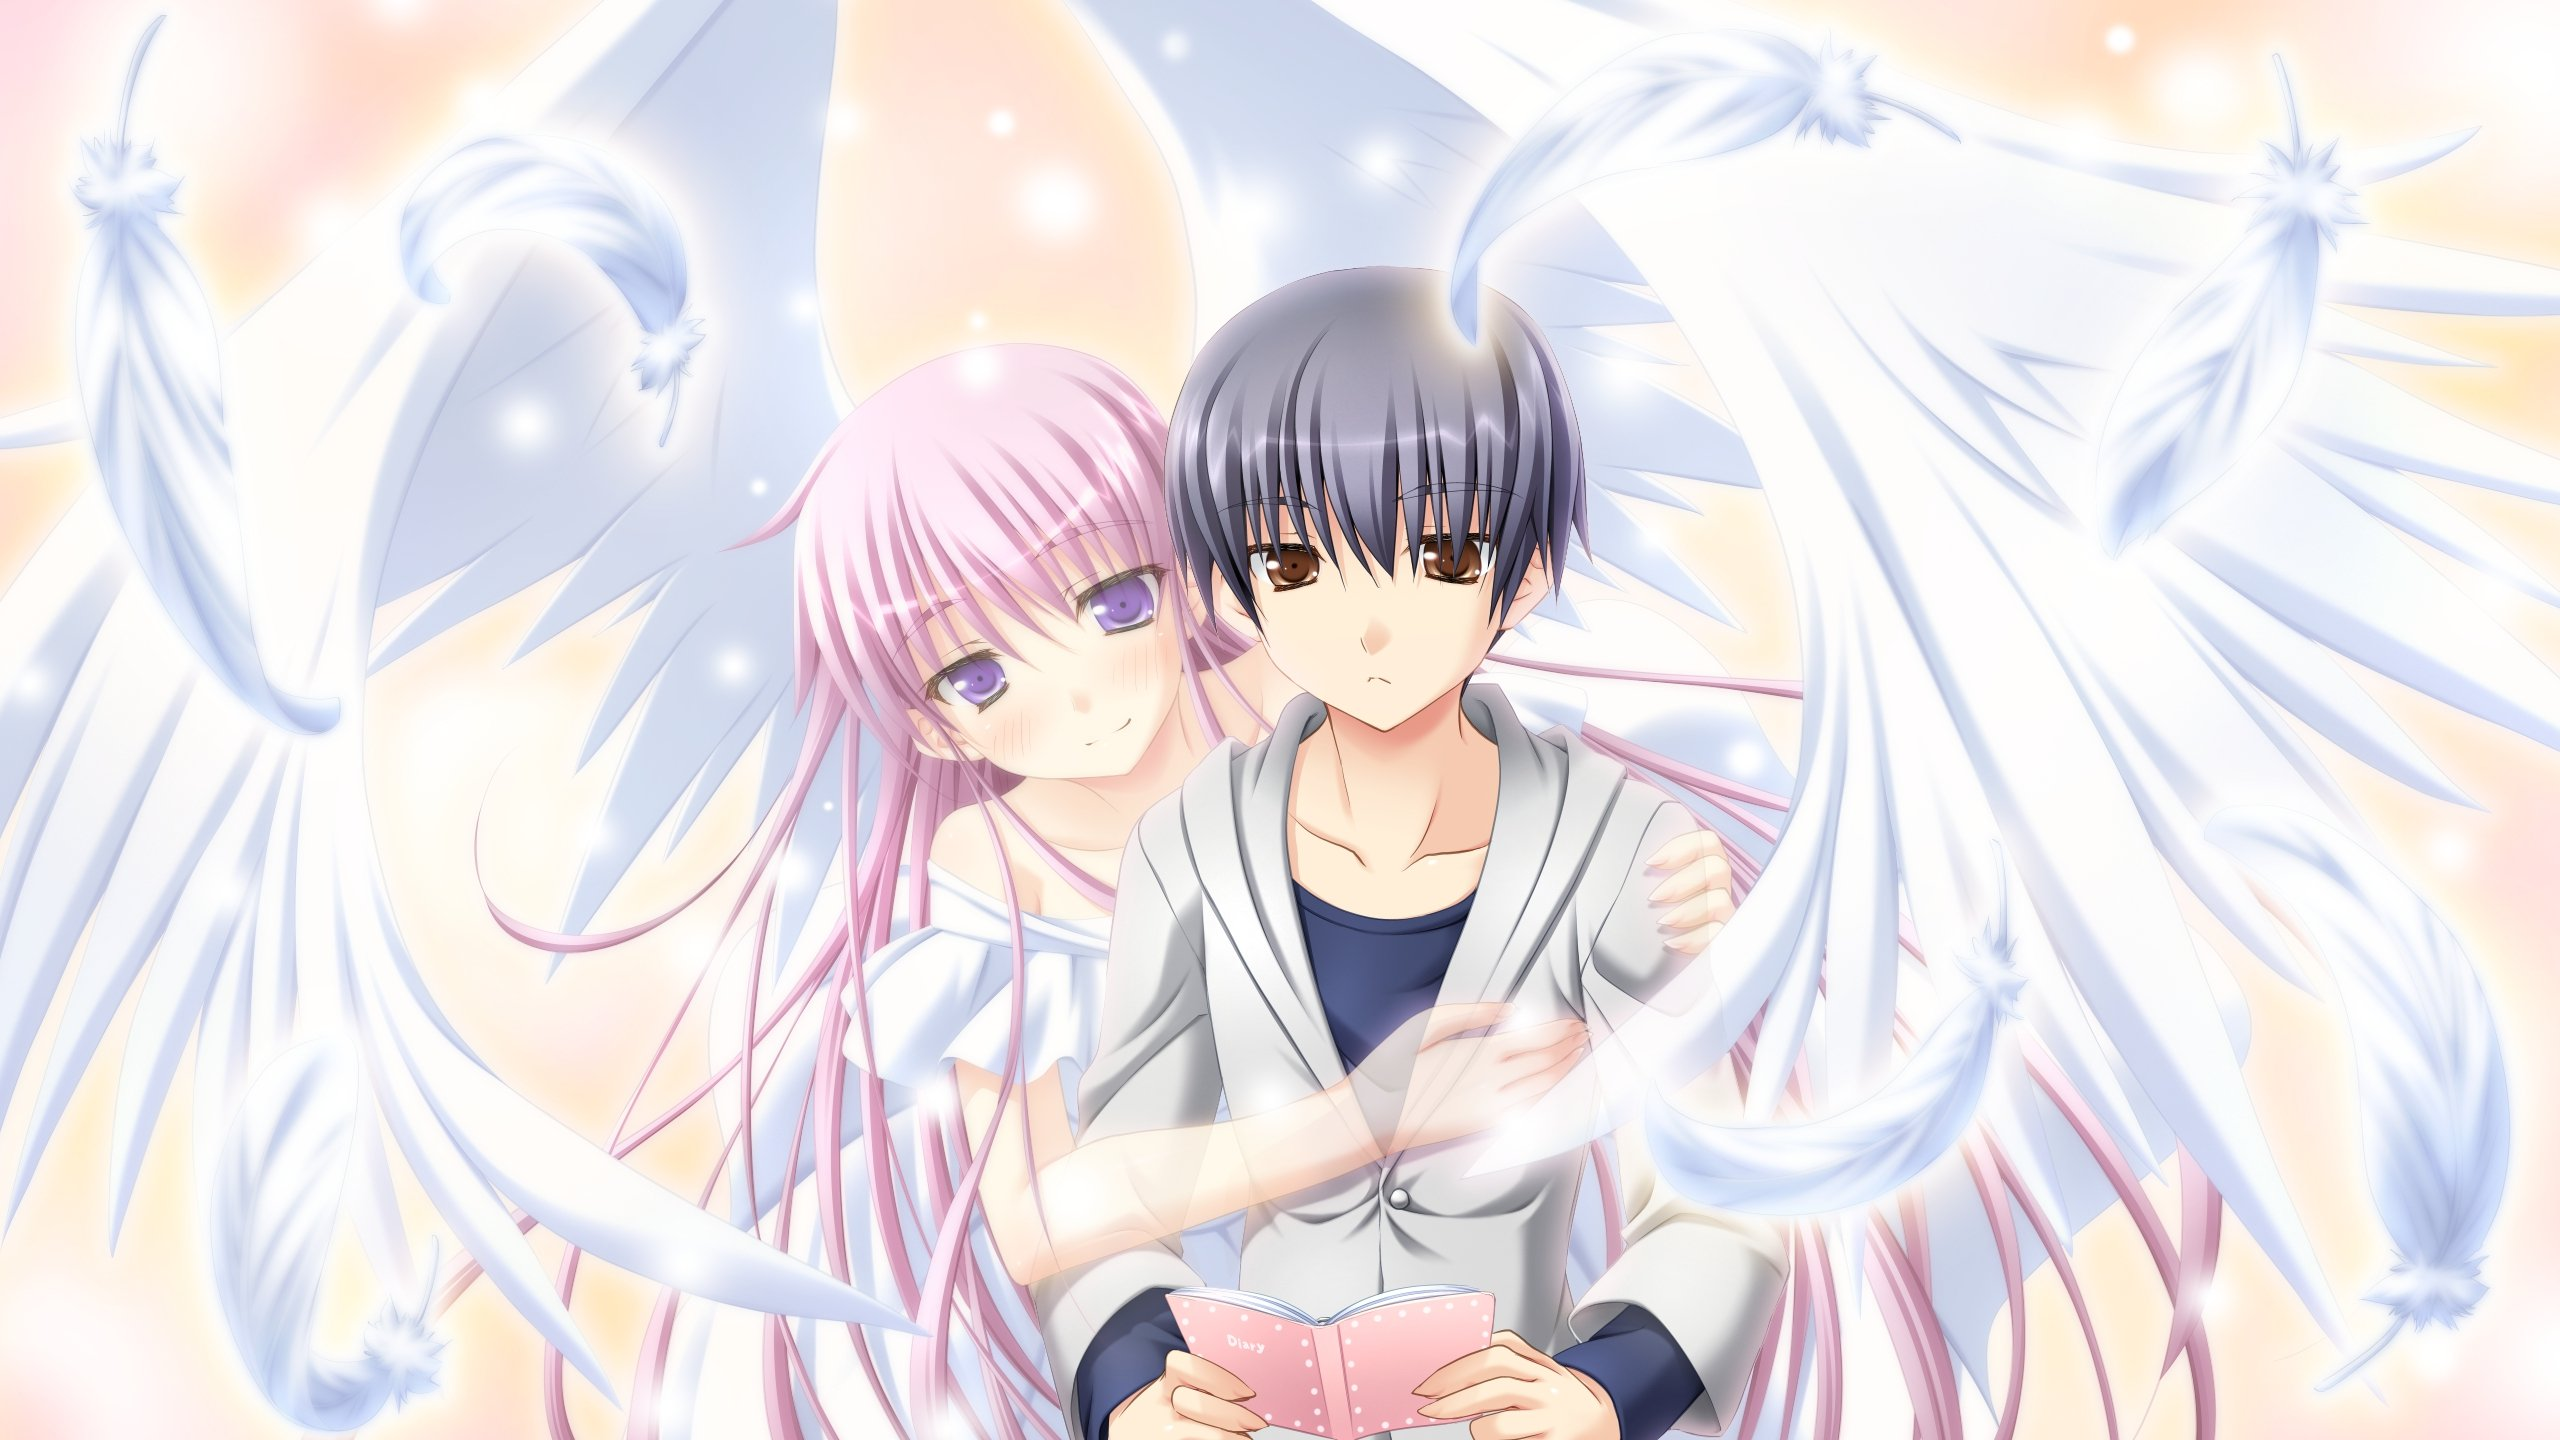 Anime Angel Boy Wallpaper Background And Demon Vampire Knight